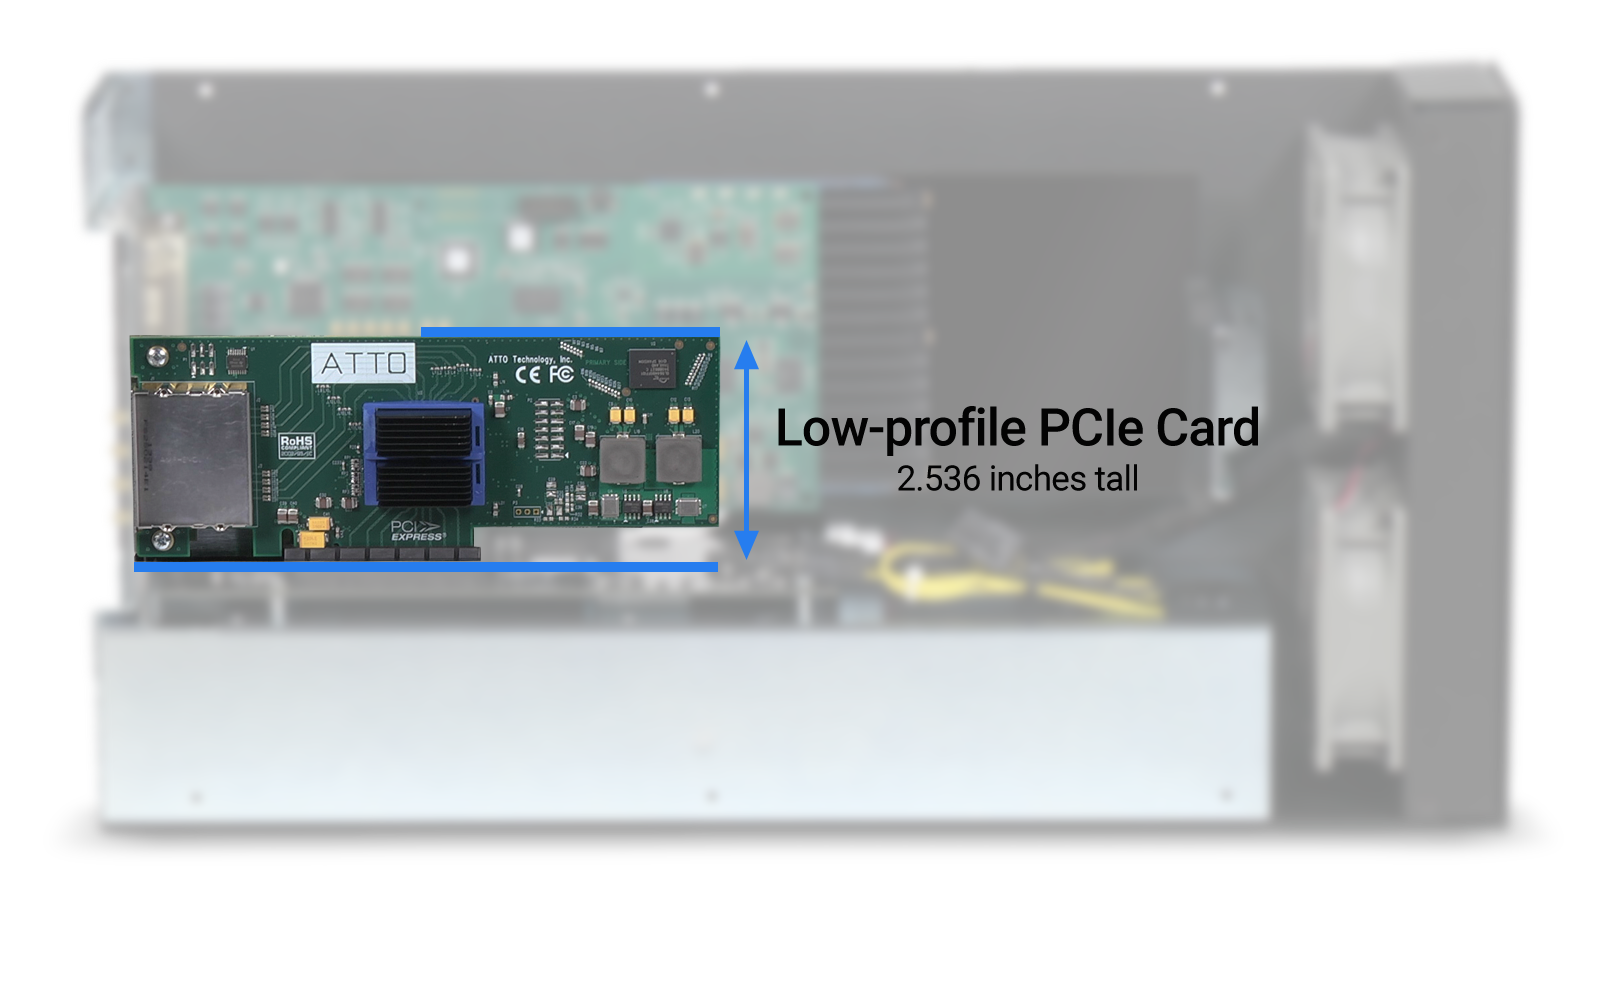 Low-profile PCIe Card Illustration